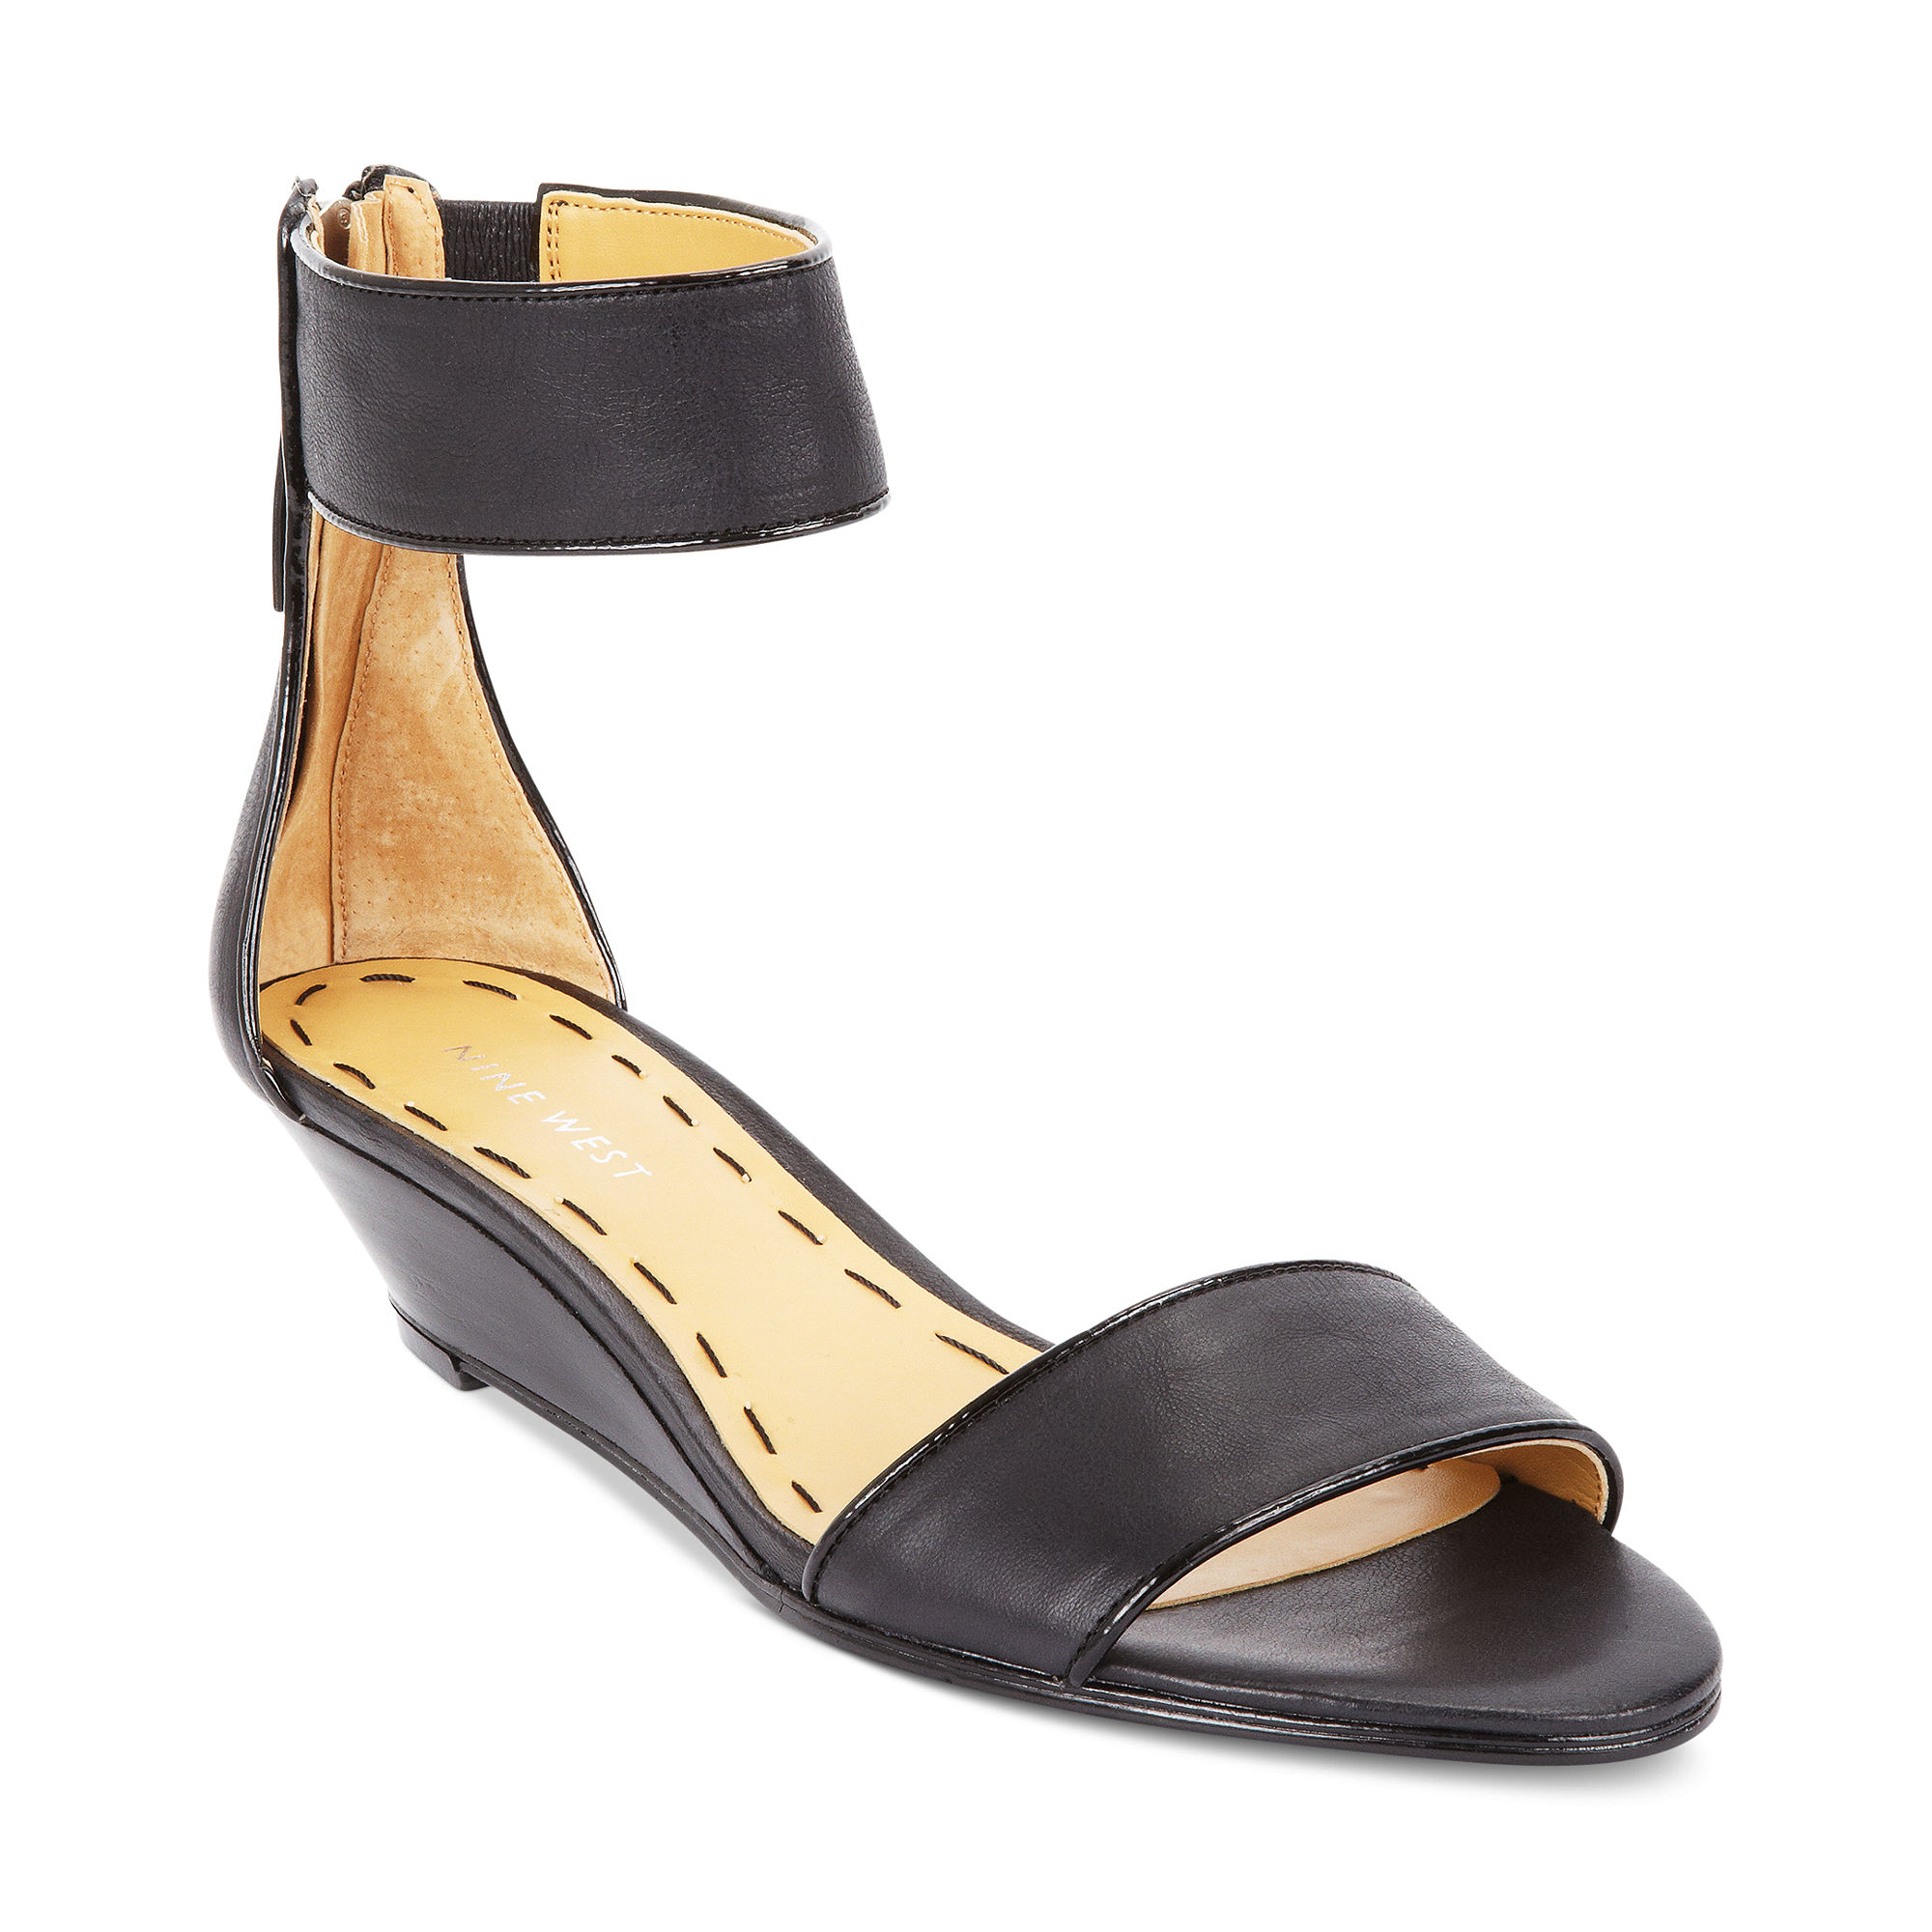 cecd4f0558 Nine West Vilta Demi Wedge Sandals in Black - Lyst